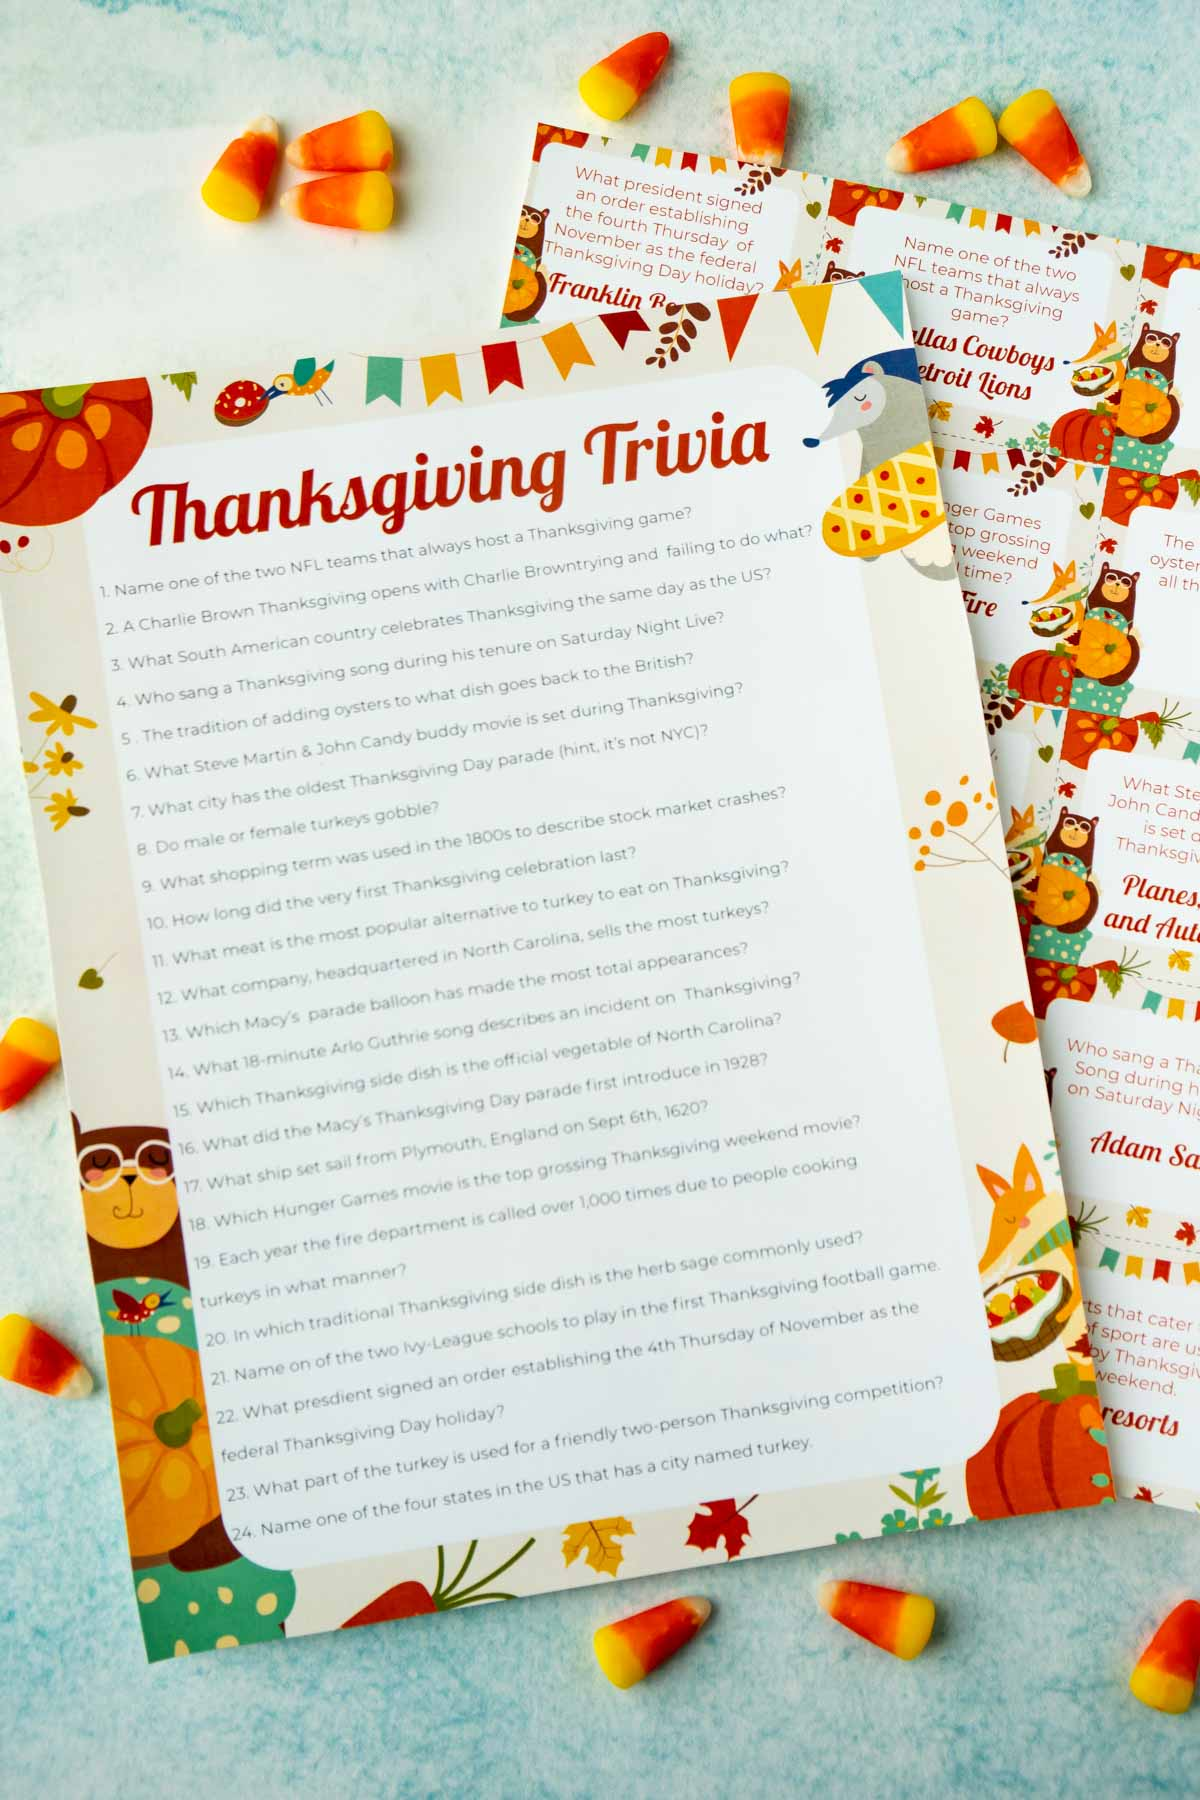 A list of Thanksgiving trivia questions on top of trivia cards